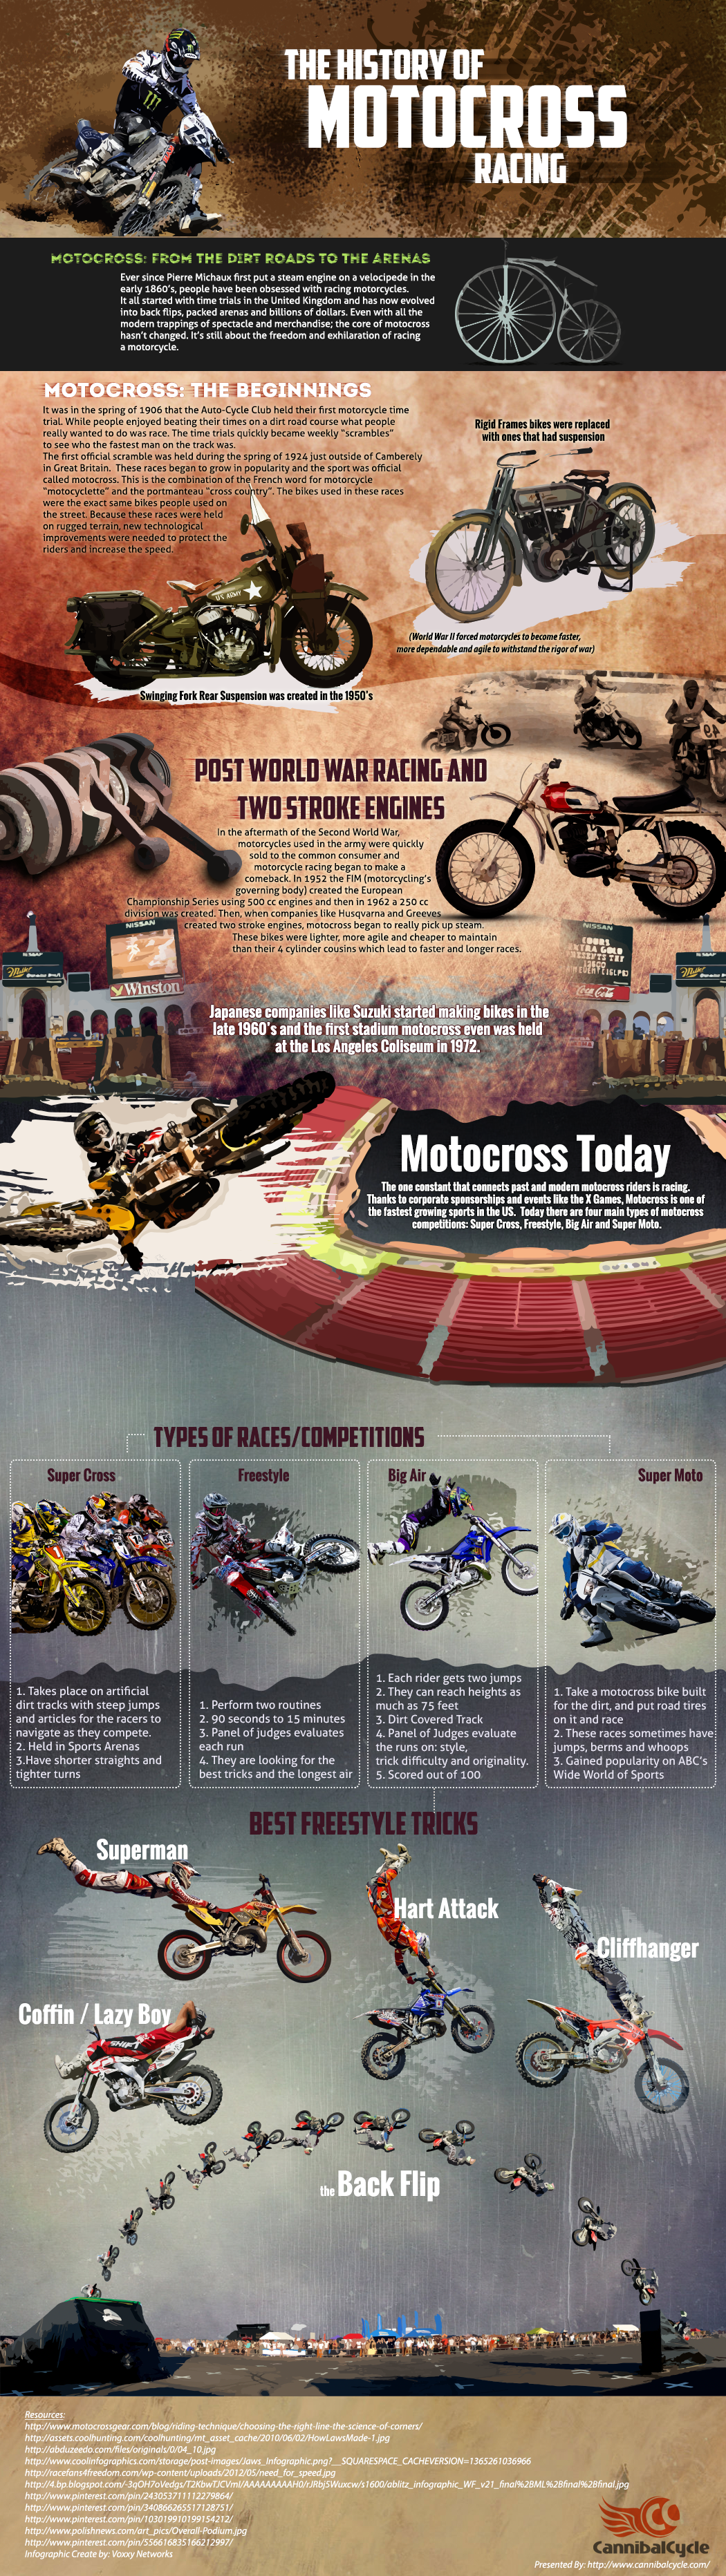 The Sports Archives Blog - The Sports Archives - The History of Motocross Racing Infographic!